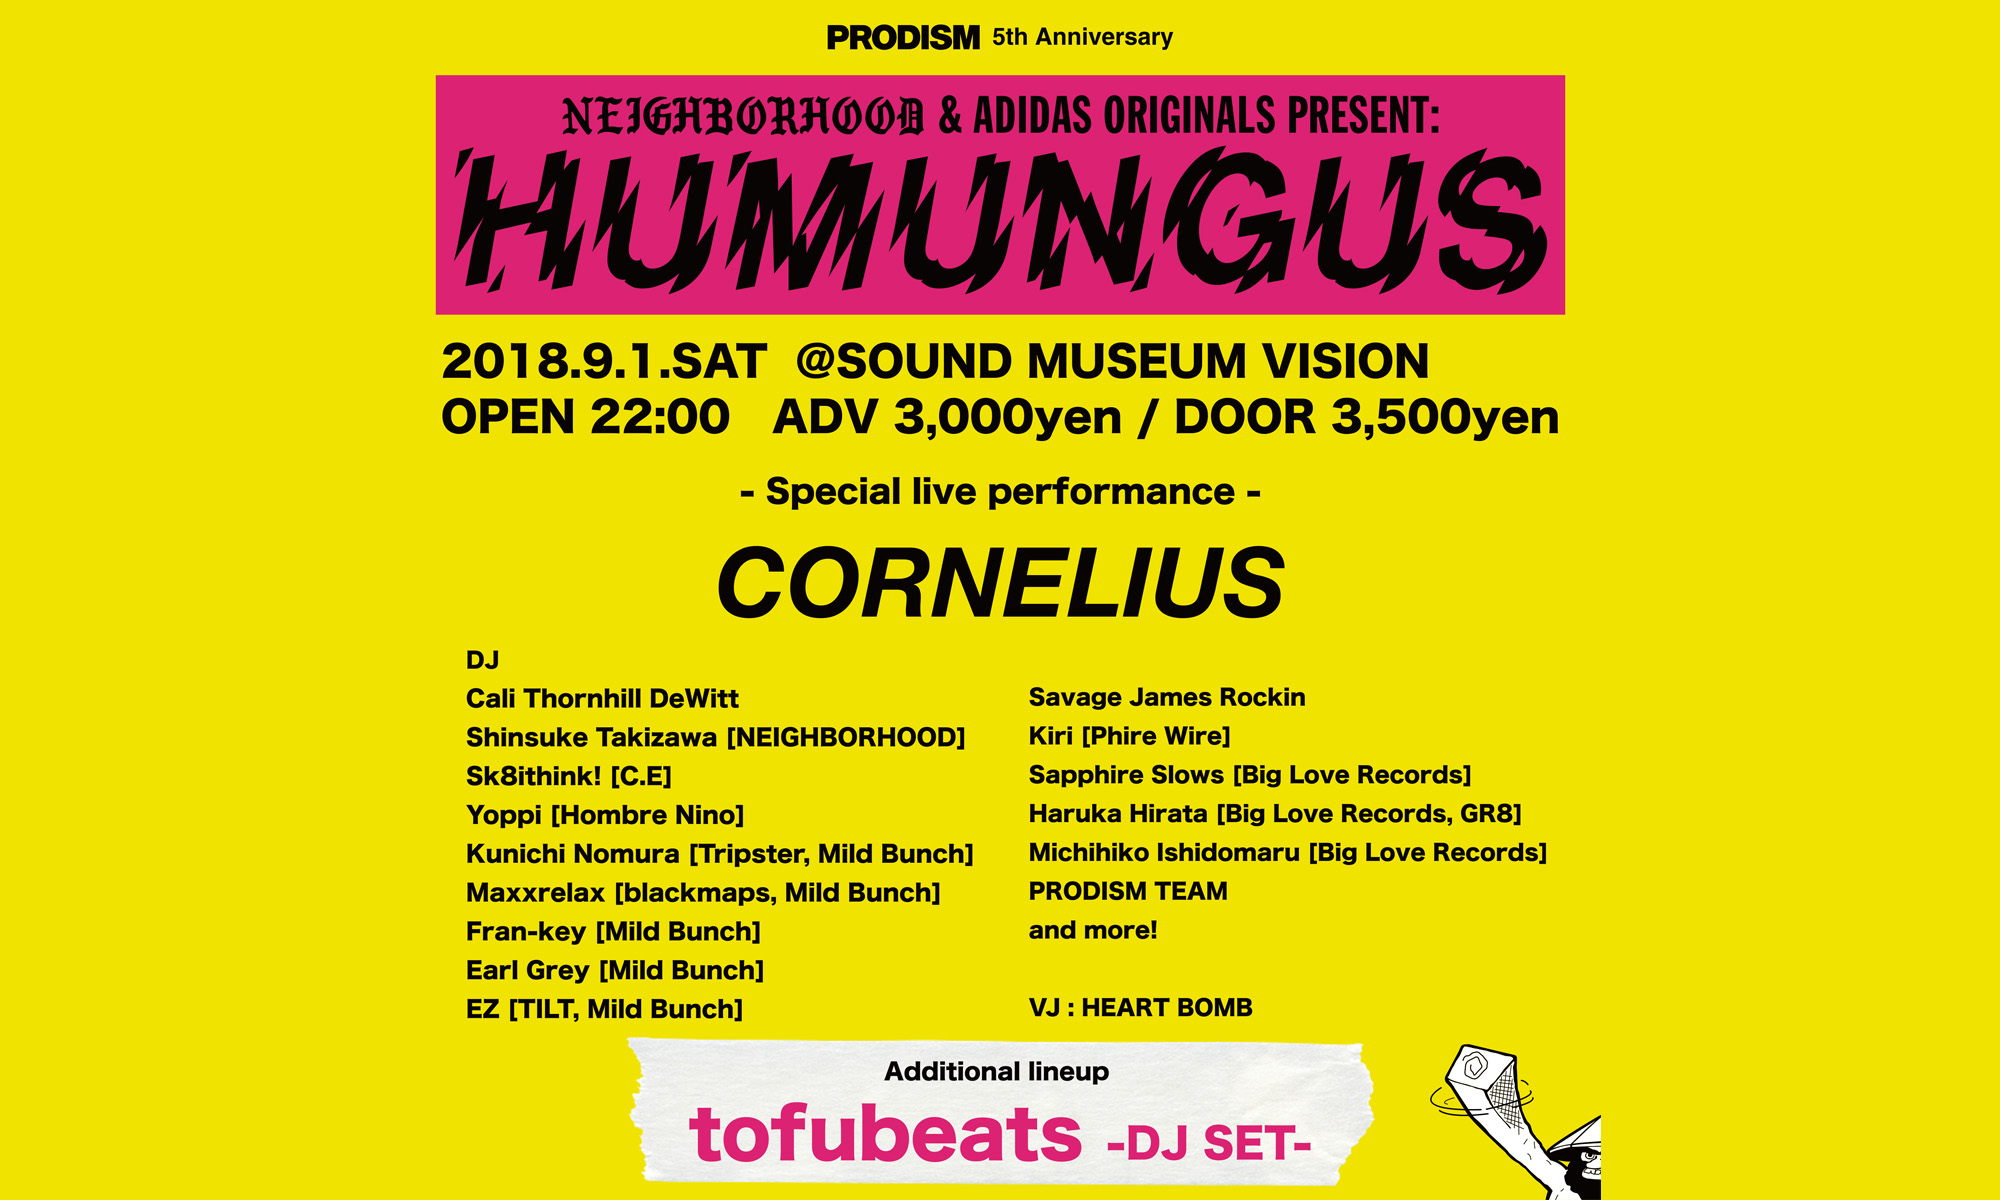 雑誌『PRODISM』5周年記念イベント NEIGHBORHOOD&ADDIDAS ORIGINALS presents HUMUNGUS